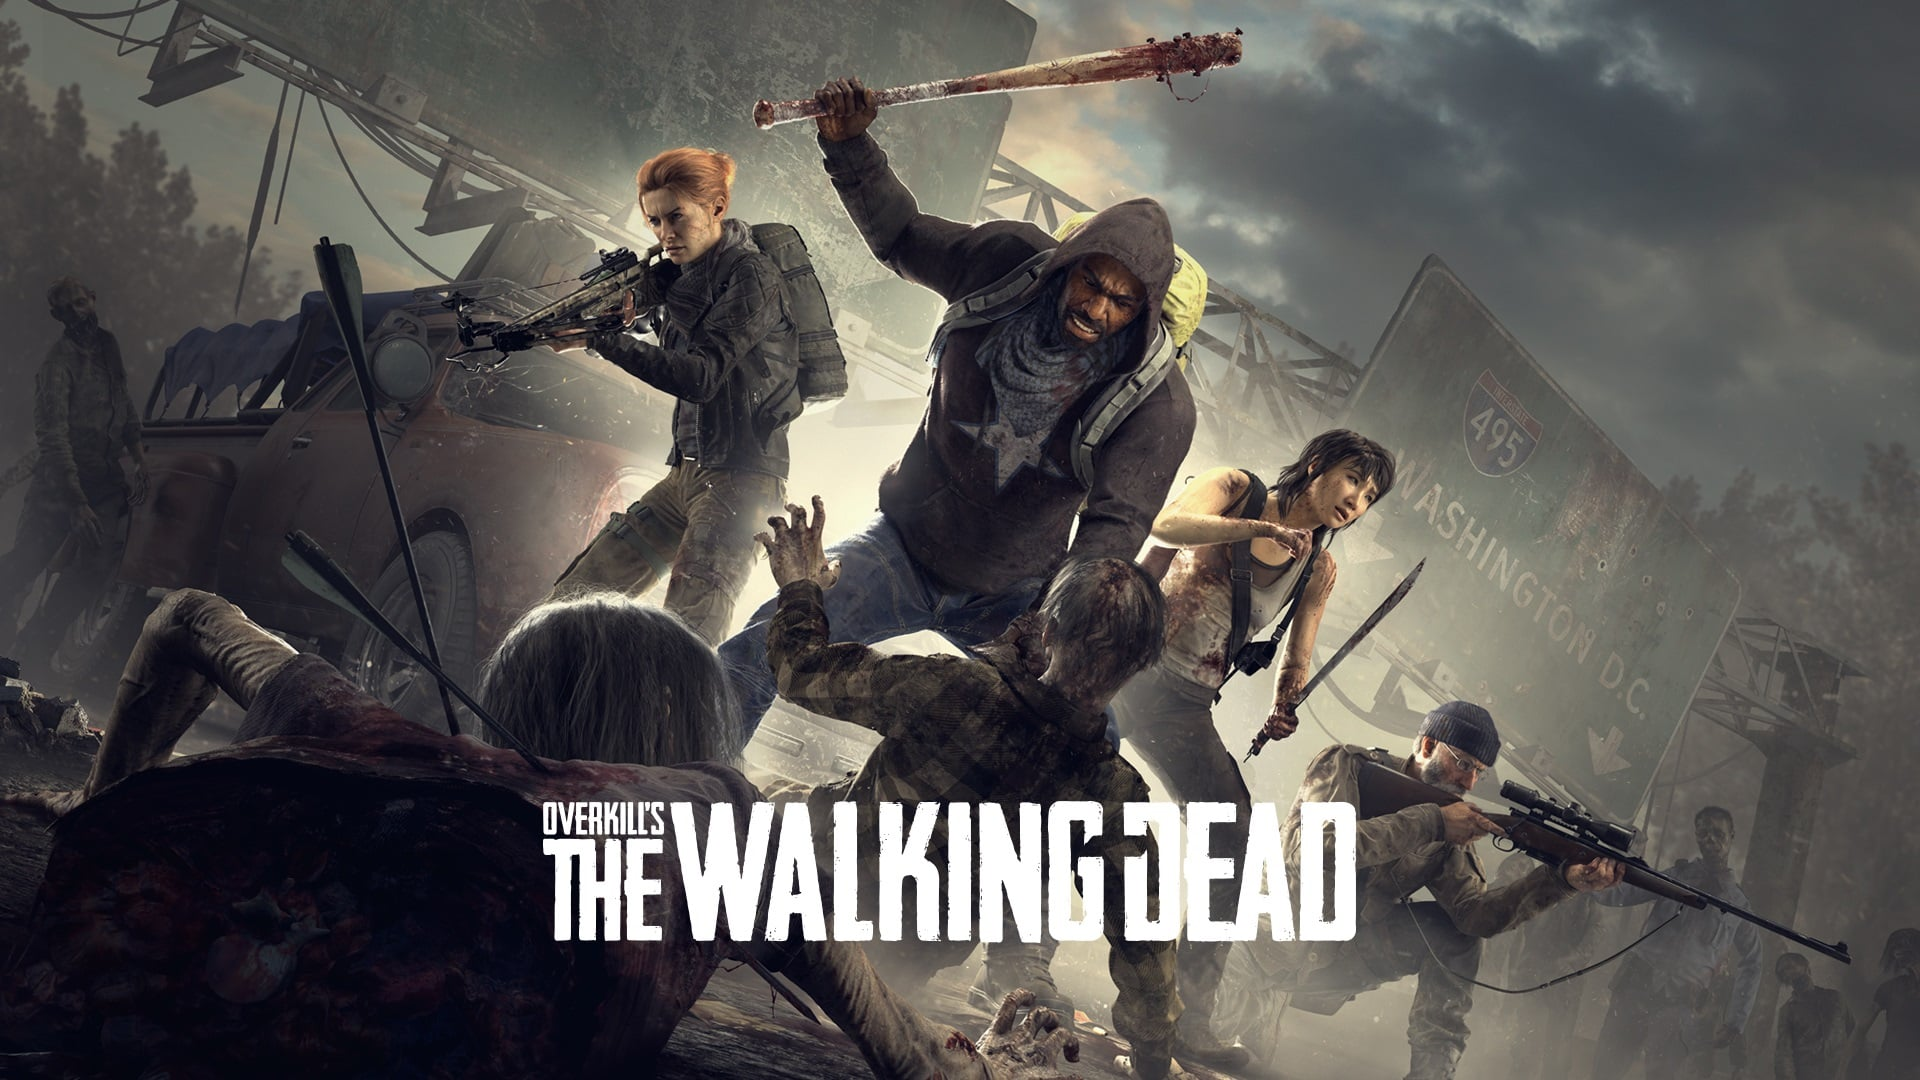 OVERKILL's The Walking Dead (PC) Review